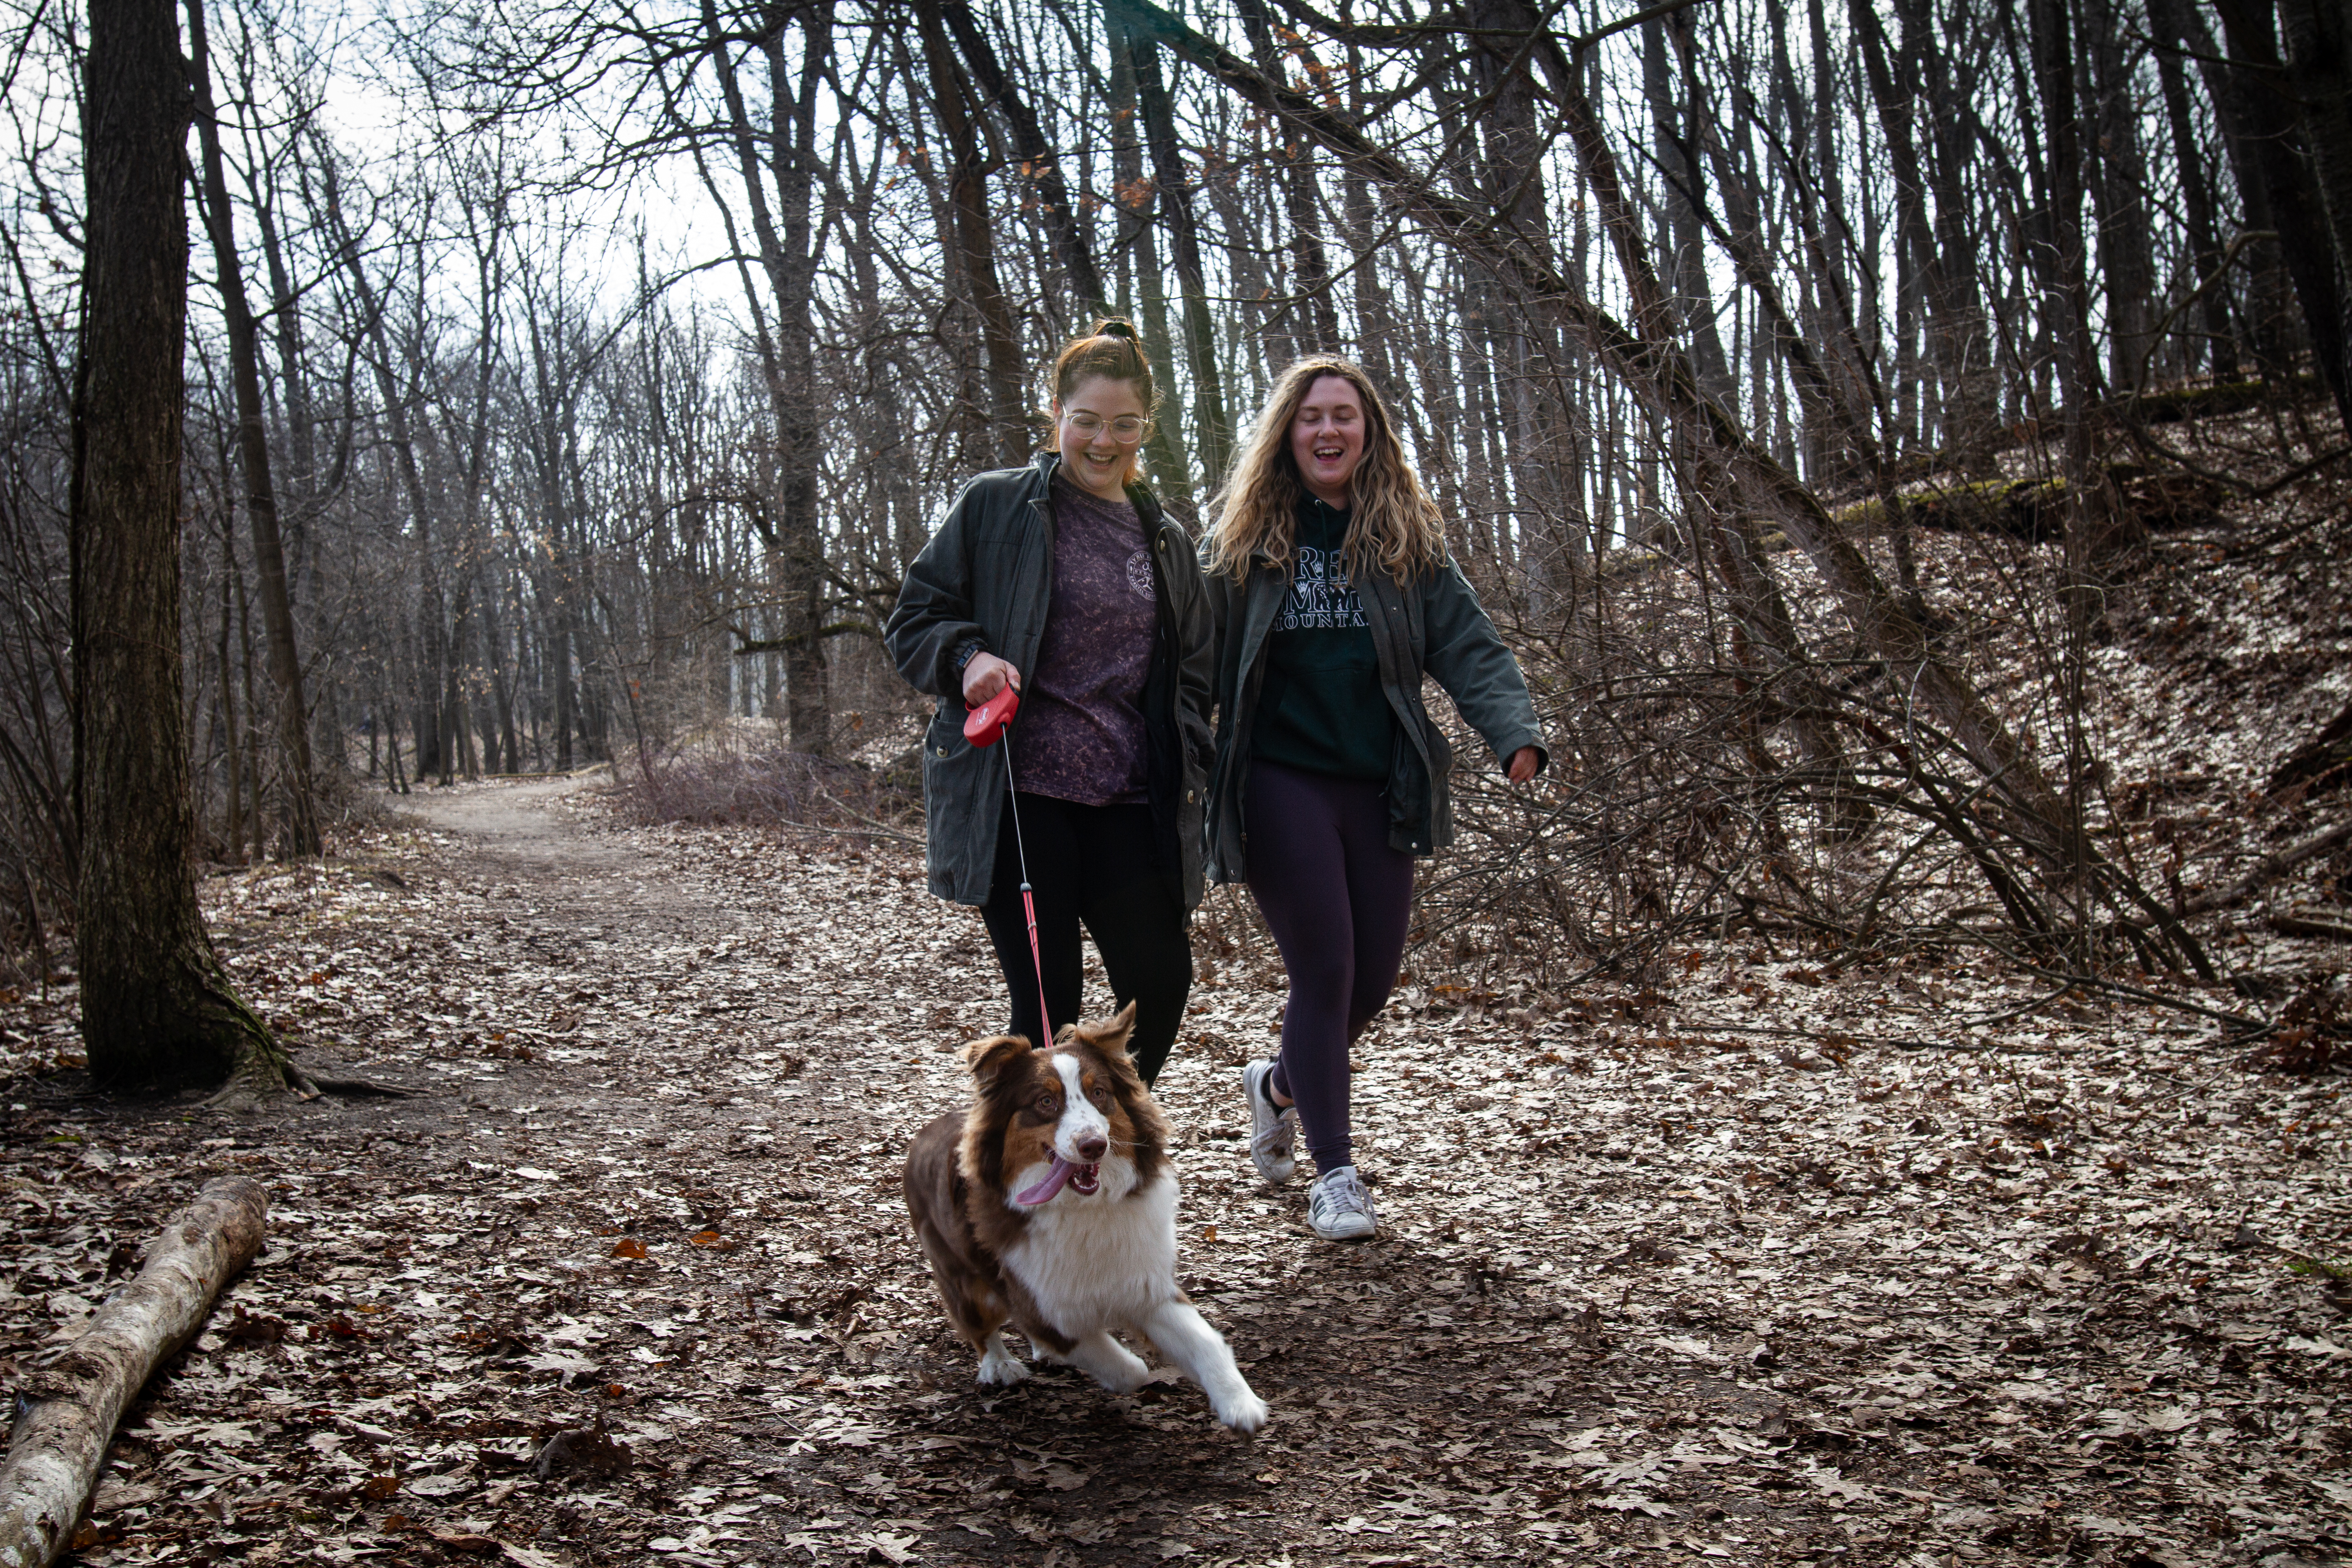 Mariah Stefani (left) and Lorin Miley (right) take Annie the dog for a walk at Asylum Lake Preserve on Wednesday, March 25.{ }(WWMT/Sarah White)